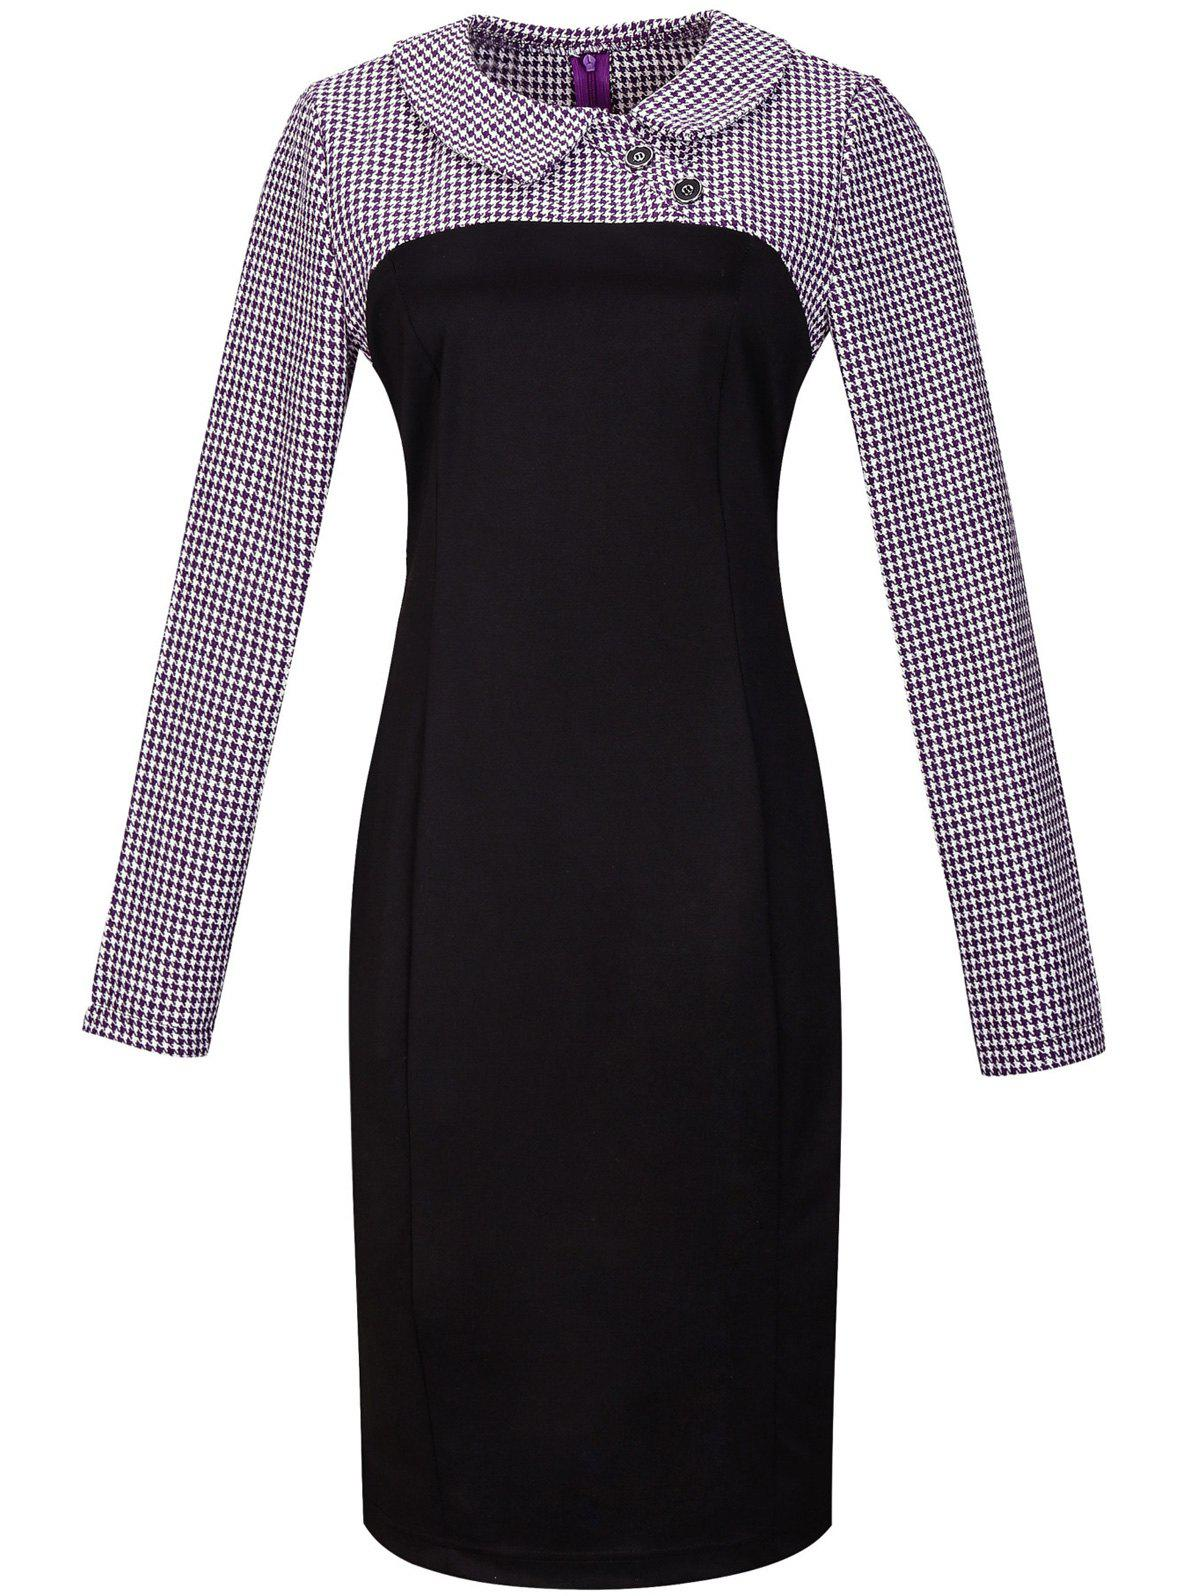 Discount Houndstooth Long Sleeve Pencil Dress